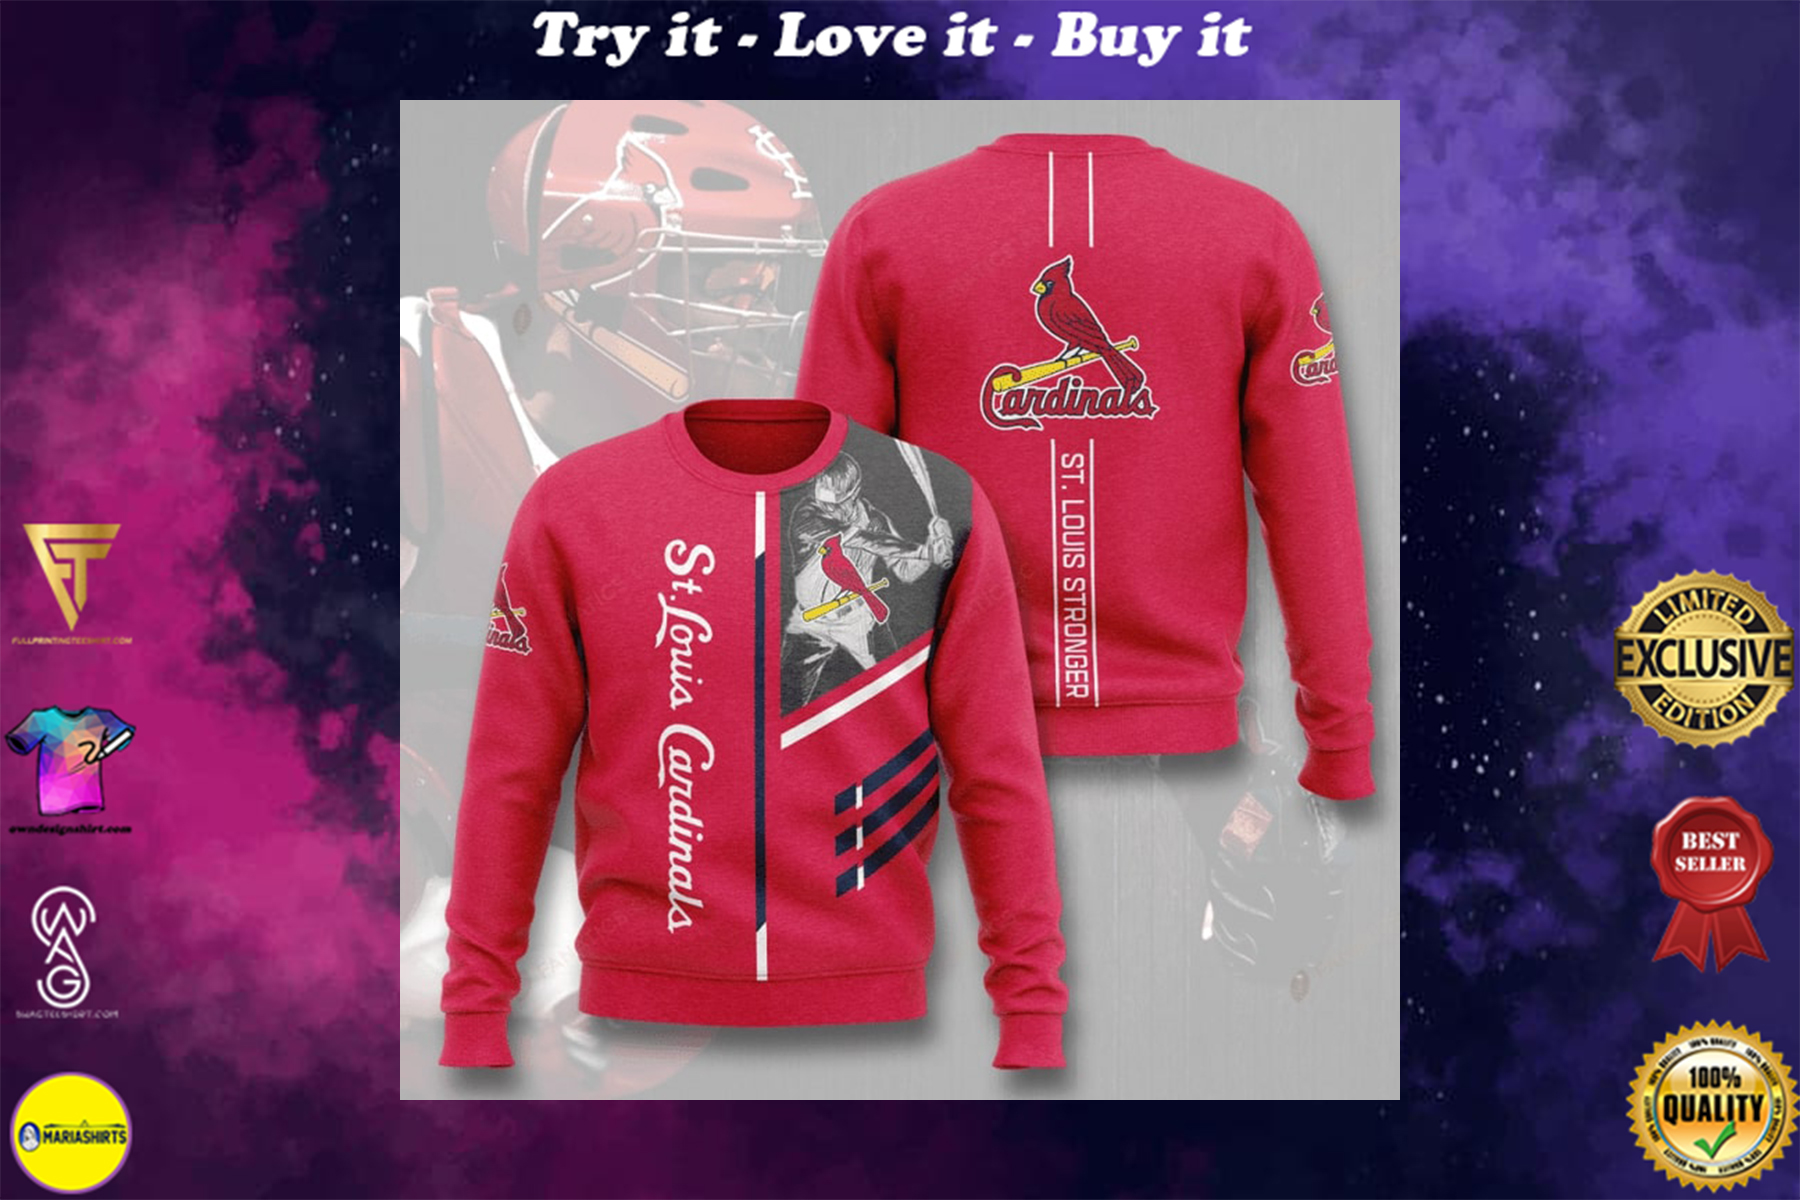 [special edition] st louis cardinals st louis stronger full printing ugly sweater - maria